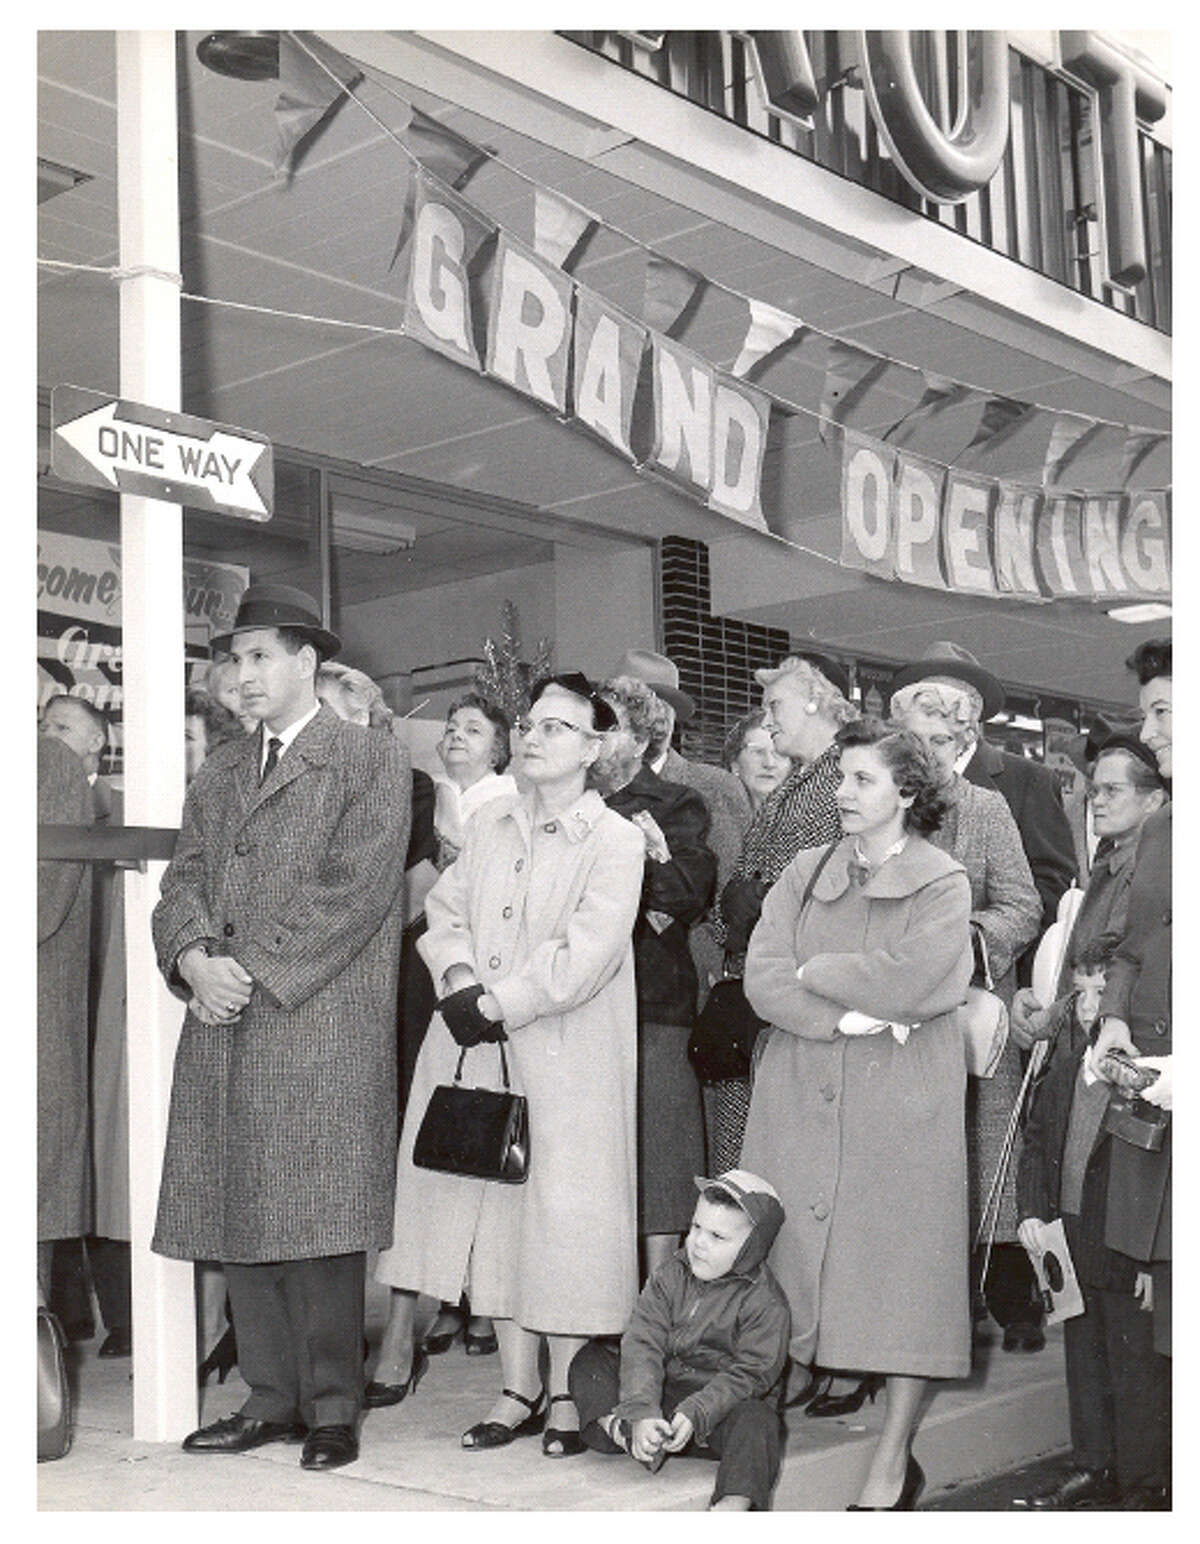 Click through the slideshow for photos of Stuyvesant Plaza through the years. Stuyvesant Plaza Grand Opening, 1959.